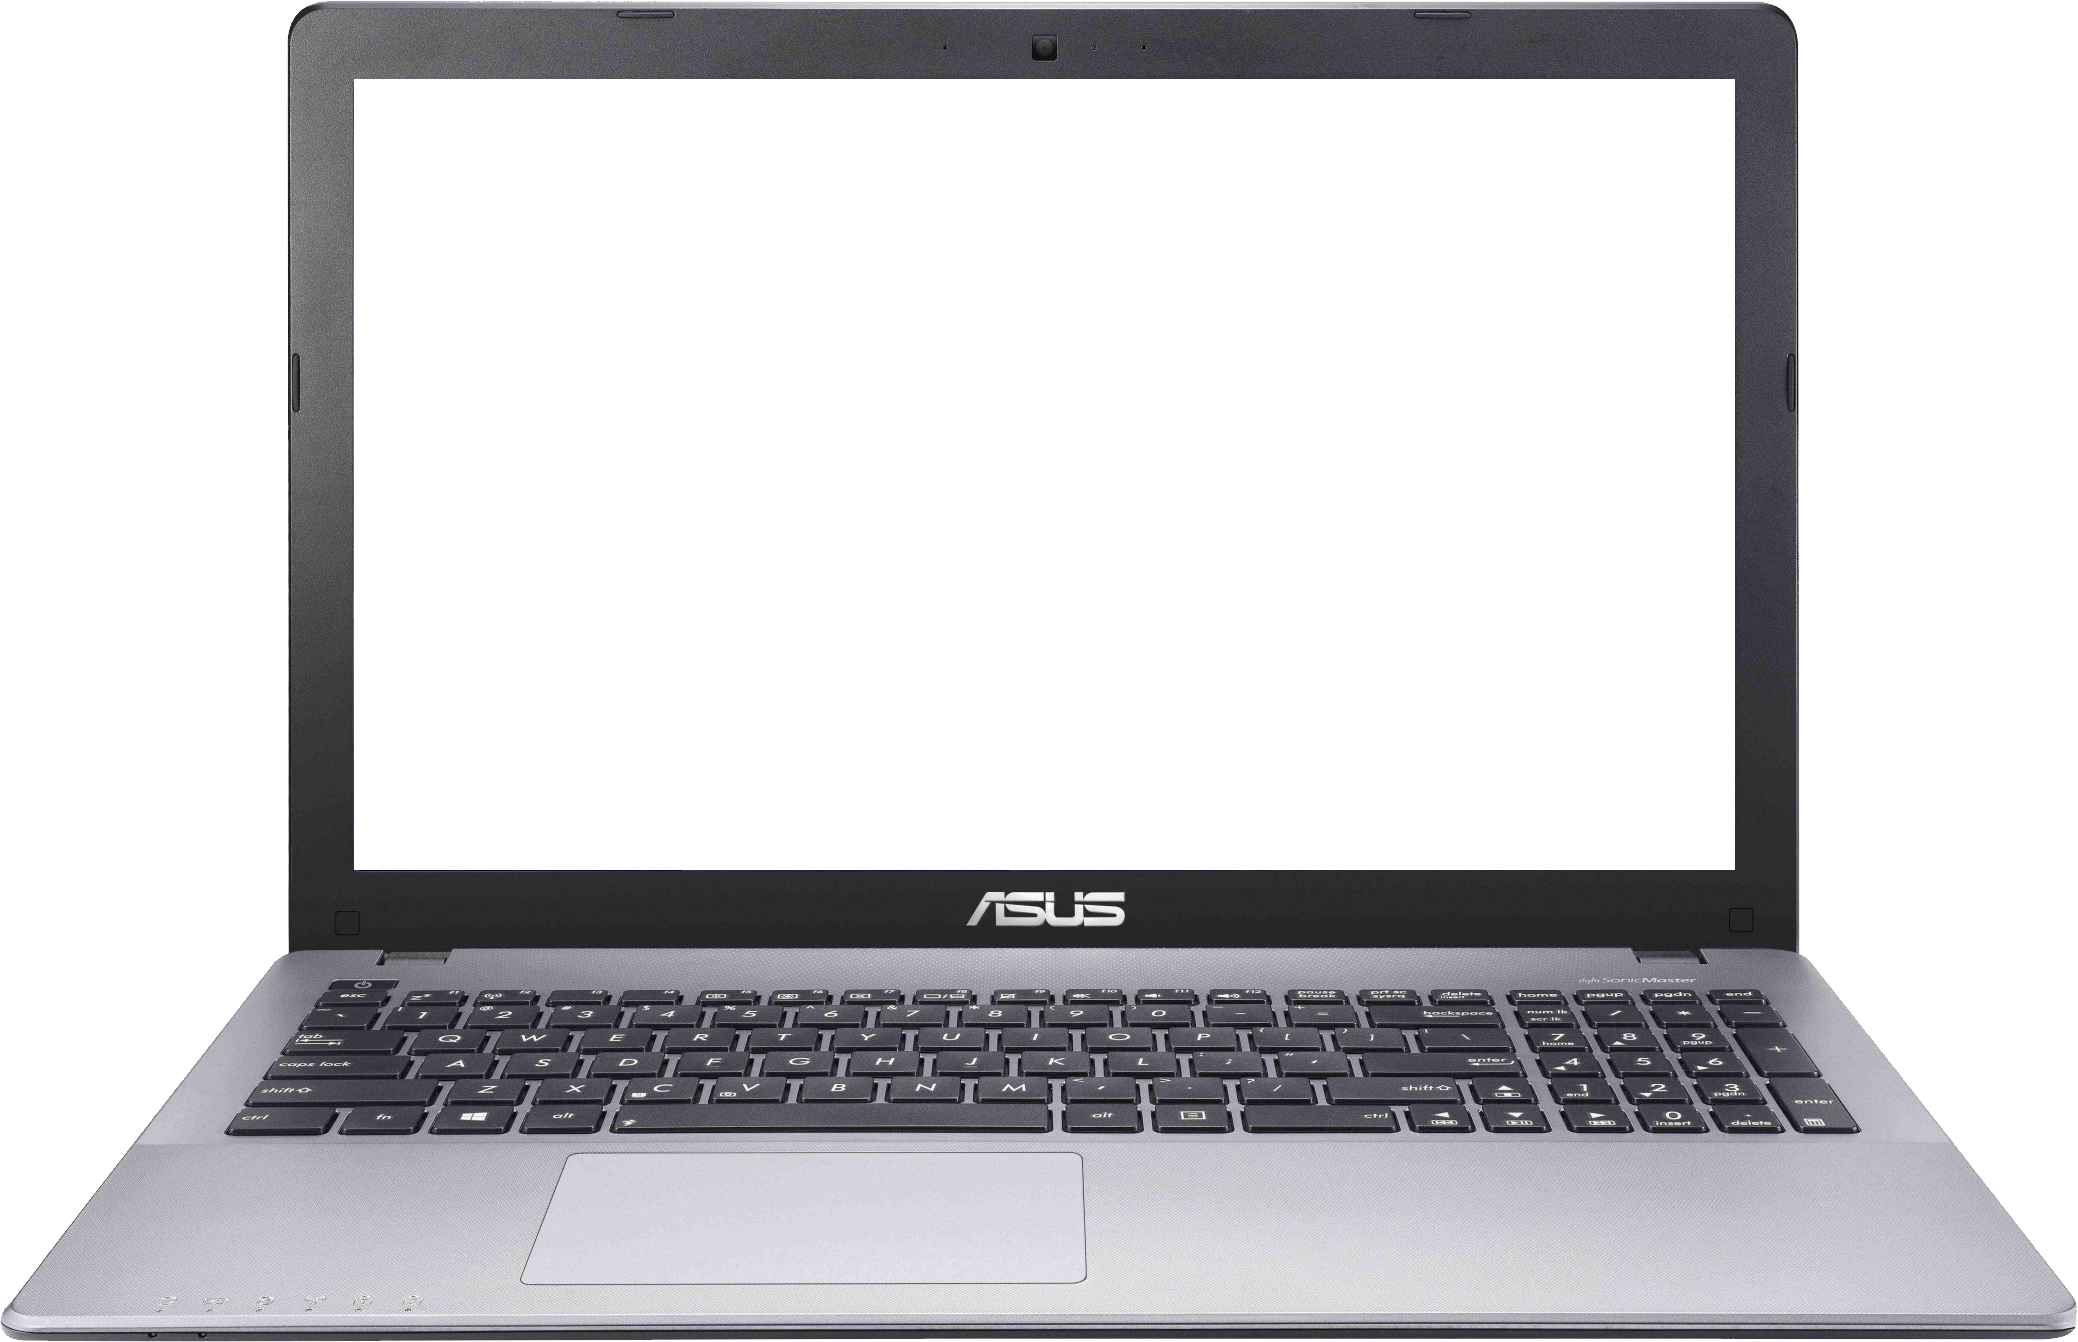 Laptop transparent PNG image